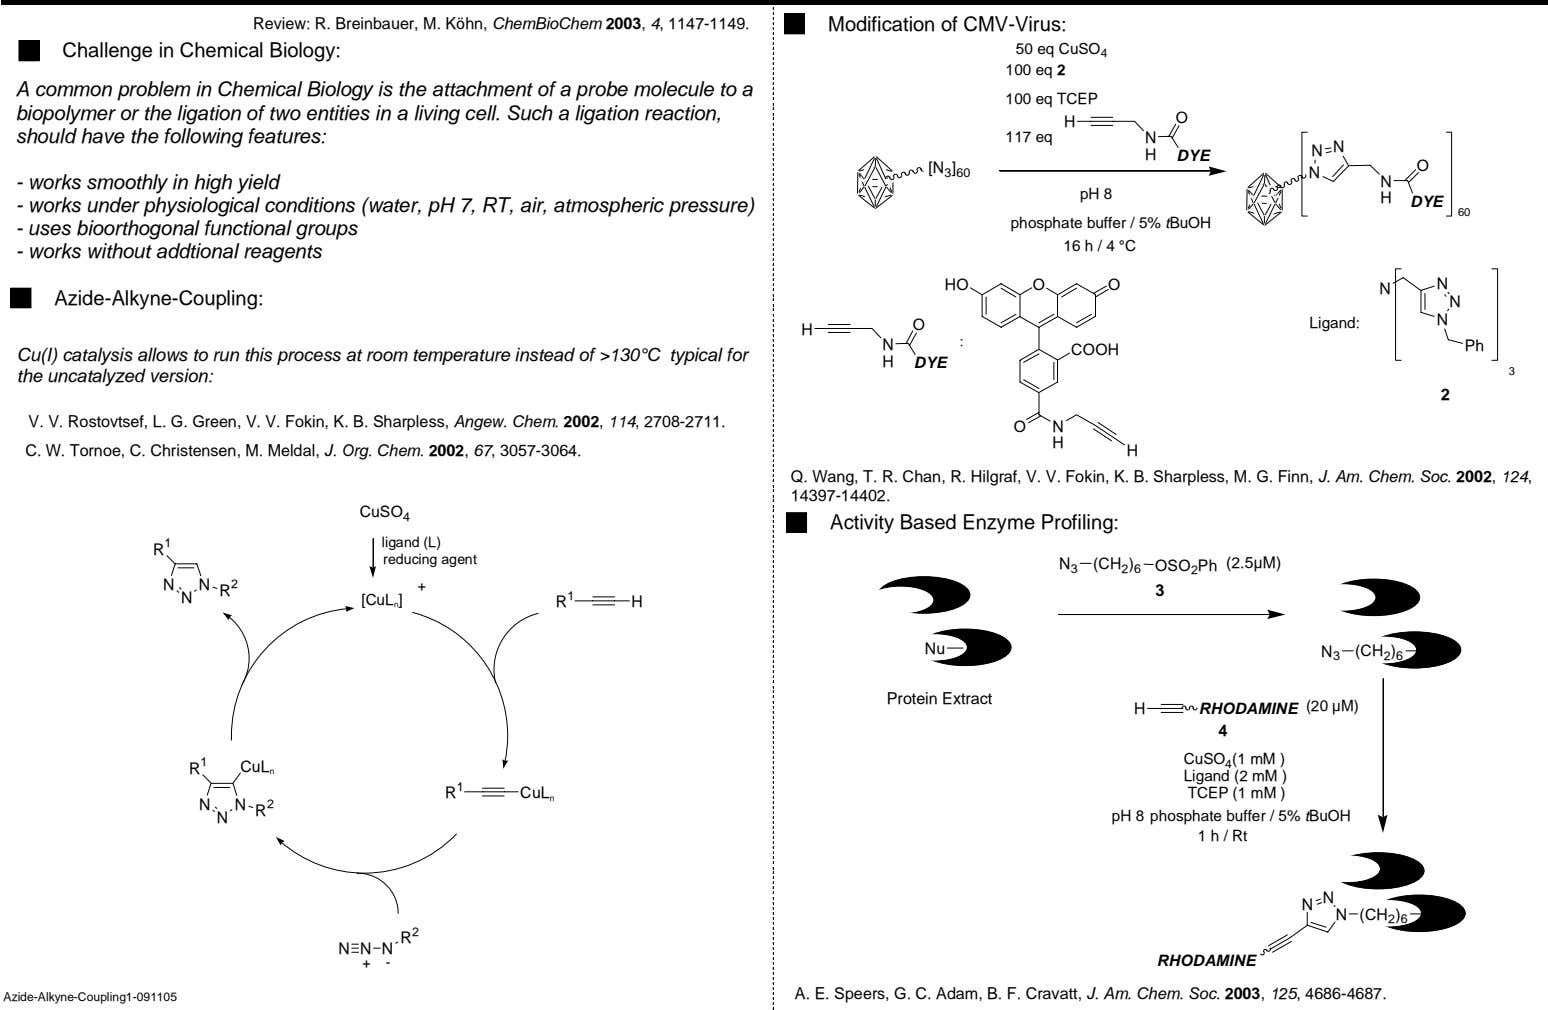 Review: R. Breinbauer, M. Köhn, ChemBioChem 2003, 4, 1147-1149. Modification of CMV-Virus: Challenge in Chemical